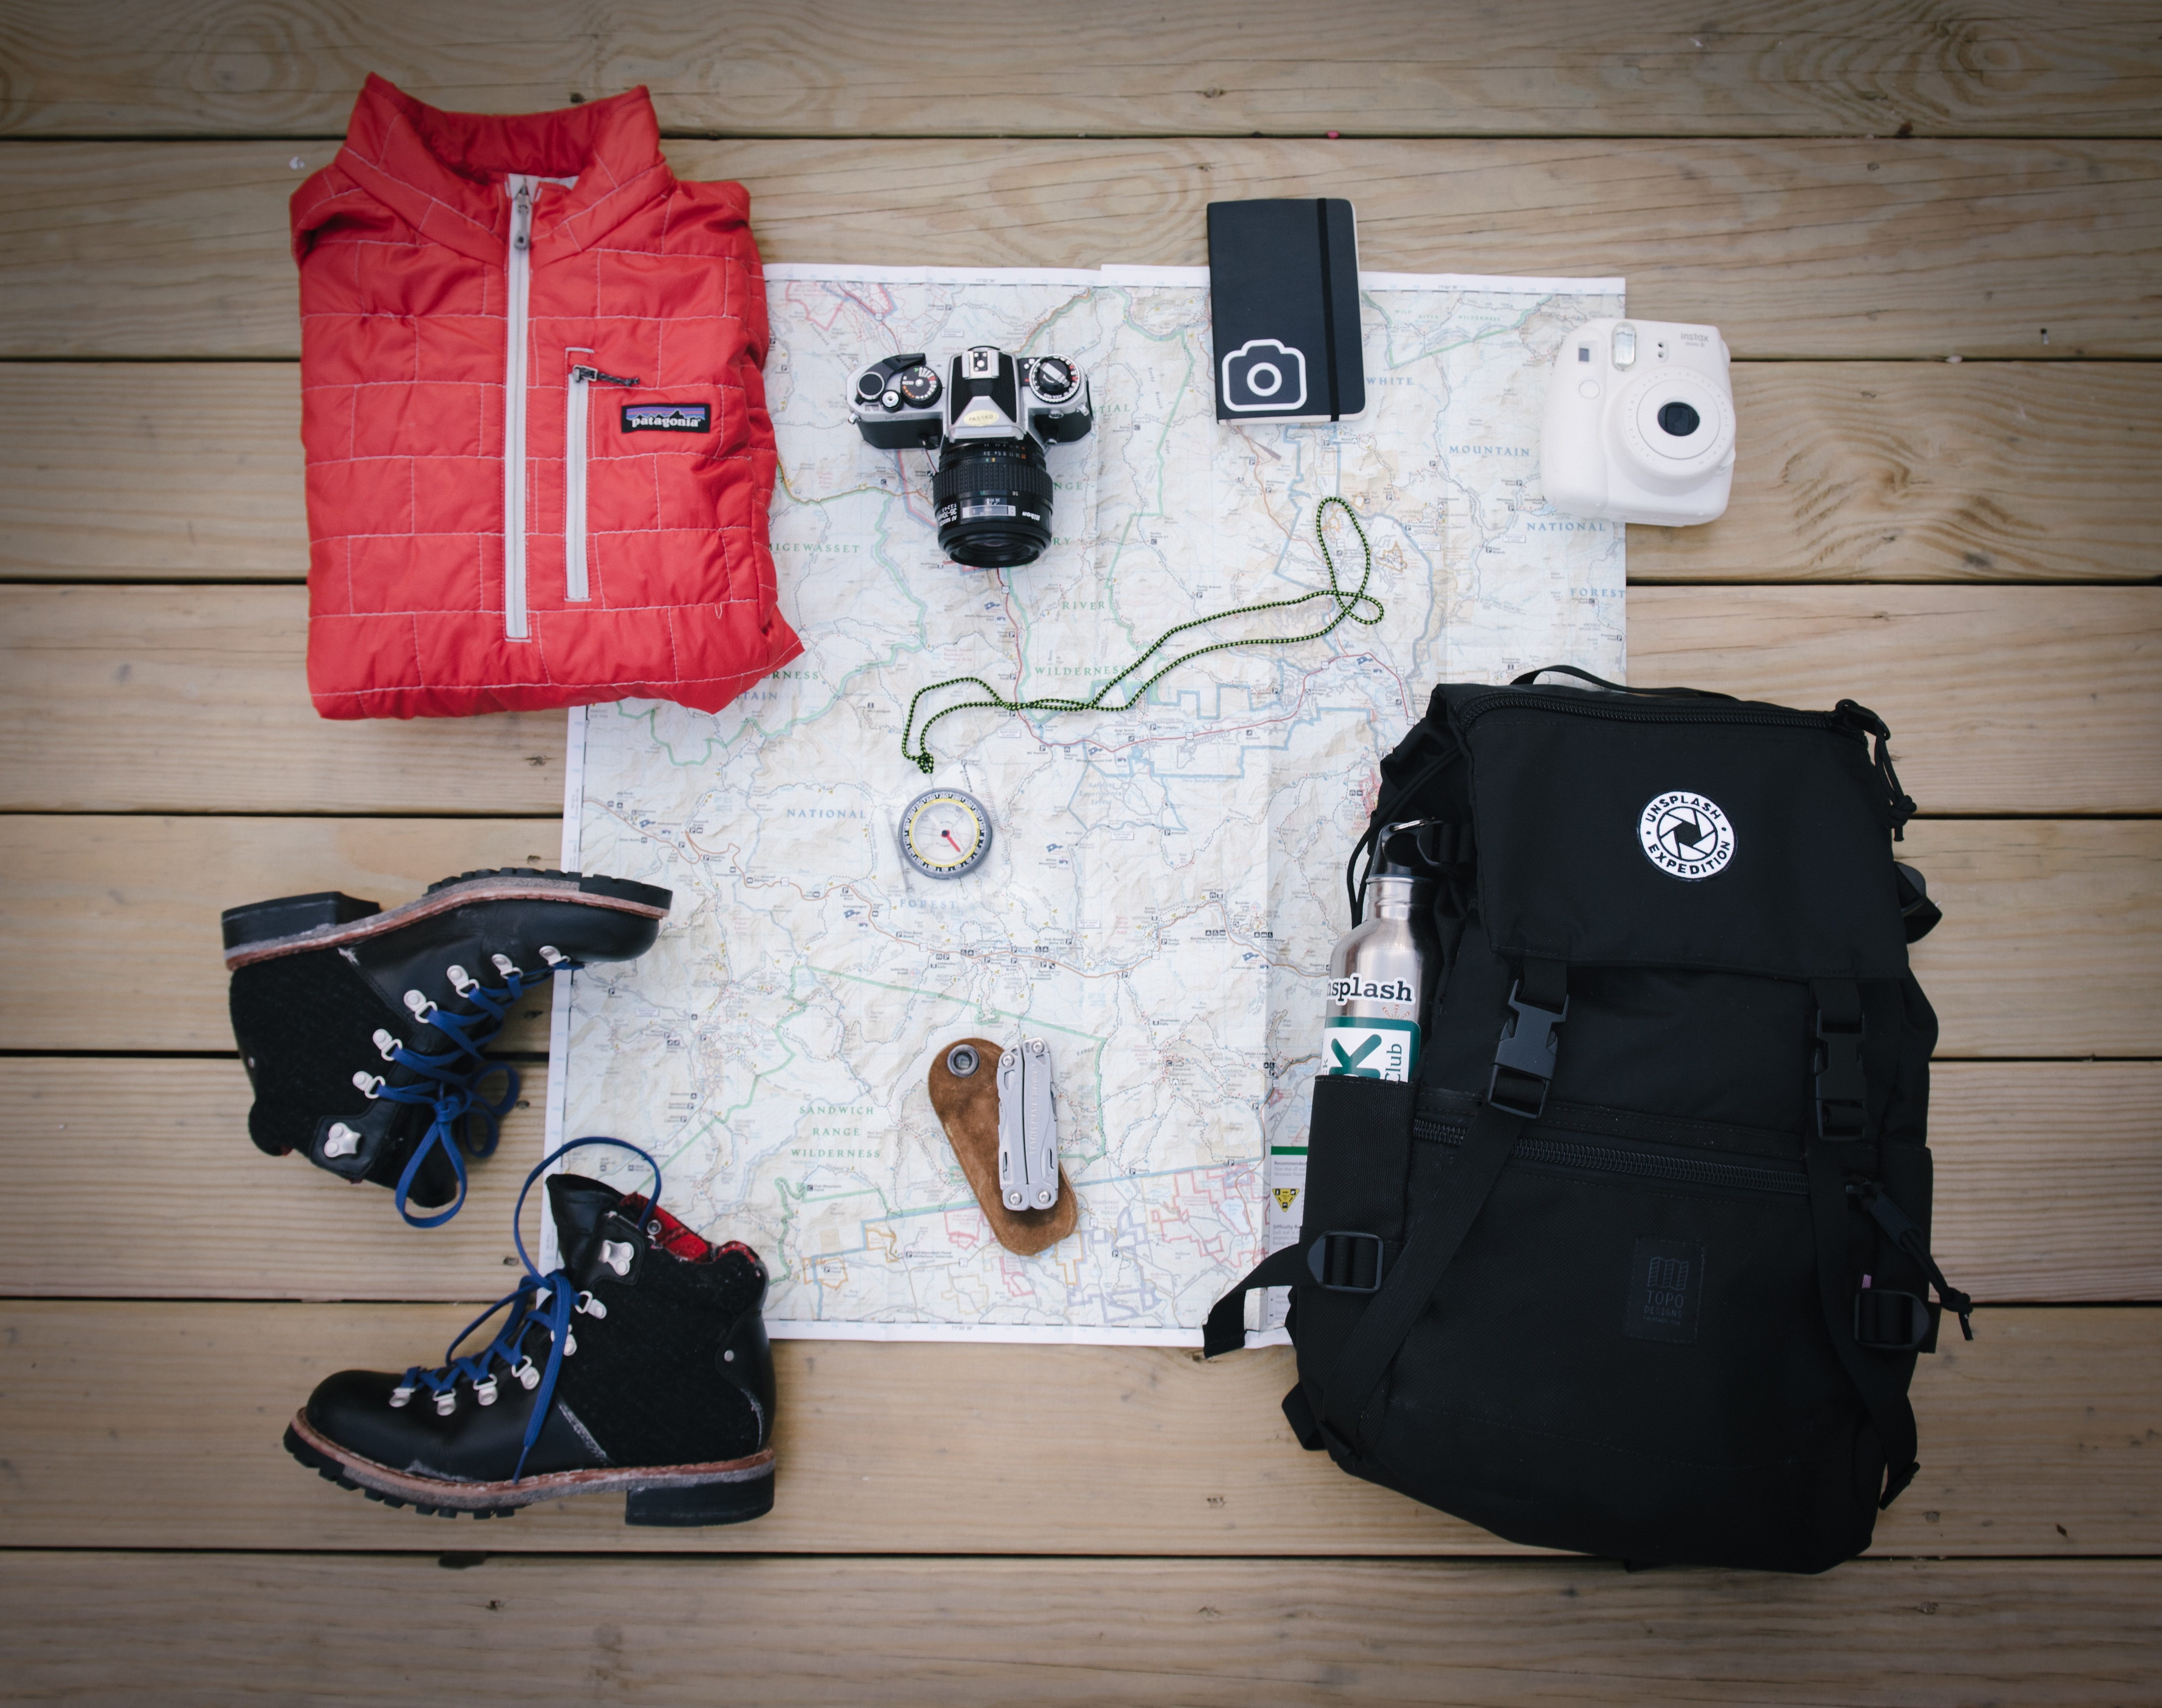 Camping gear including boots, rucksack, compass, map and gilet